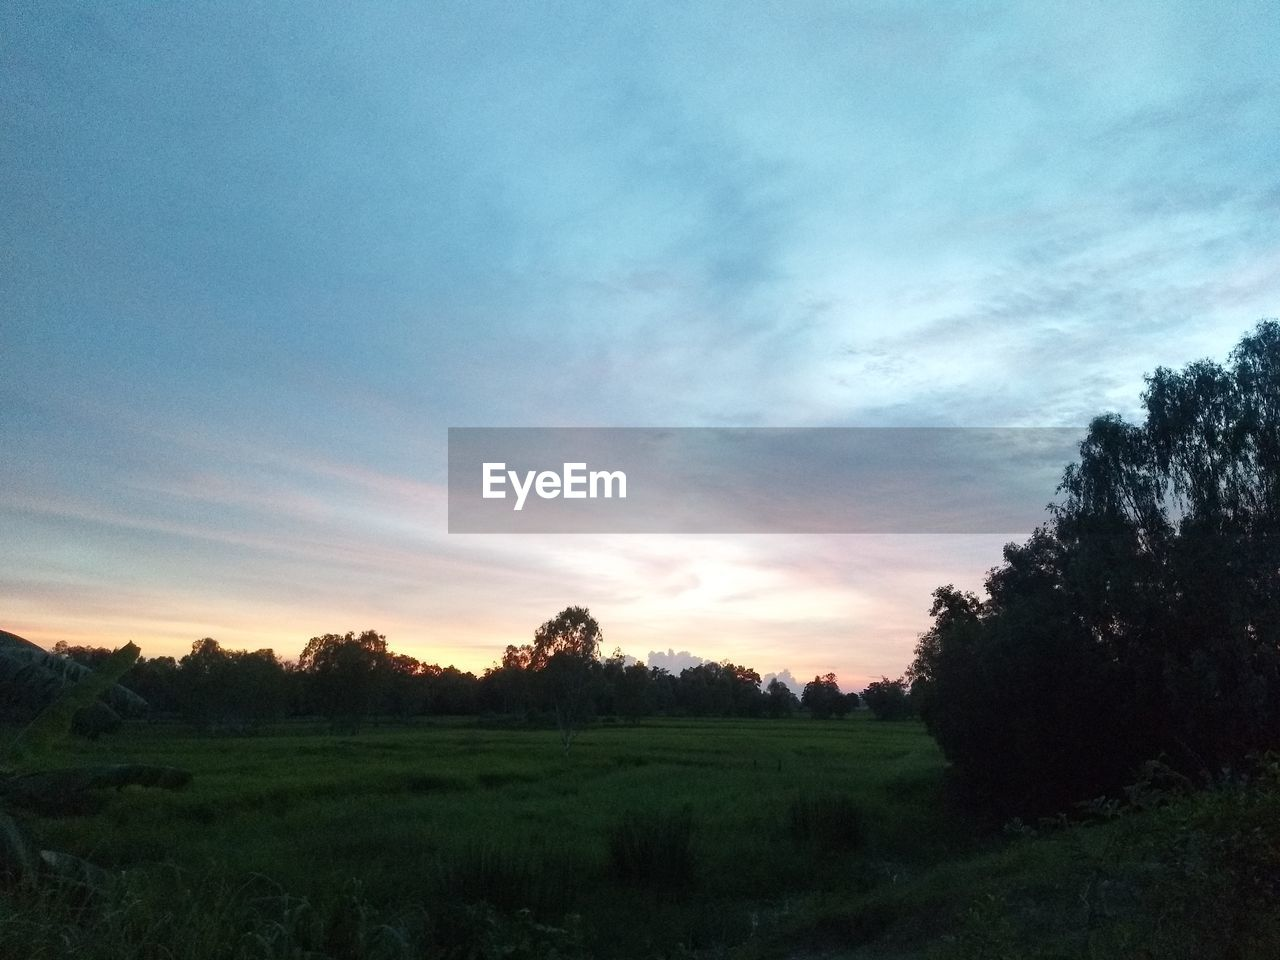 sky, tranquility, plant, scenics - nature, tranquil scene, tree, cloud - sky, beauty in nature, sunset, landscape, environment, field, nature, land, no people, non-urban scene, growth, rural scene, outdoors, idyllic